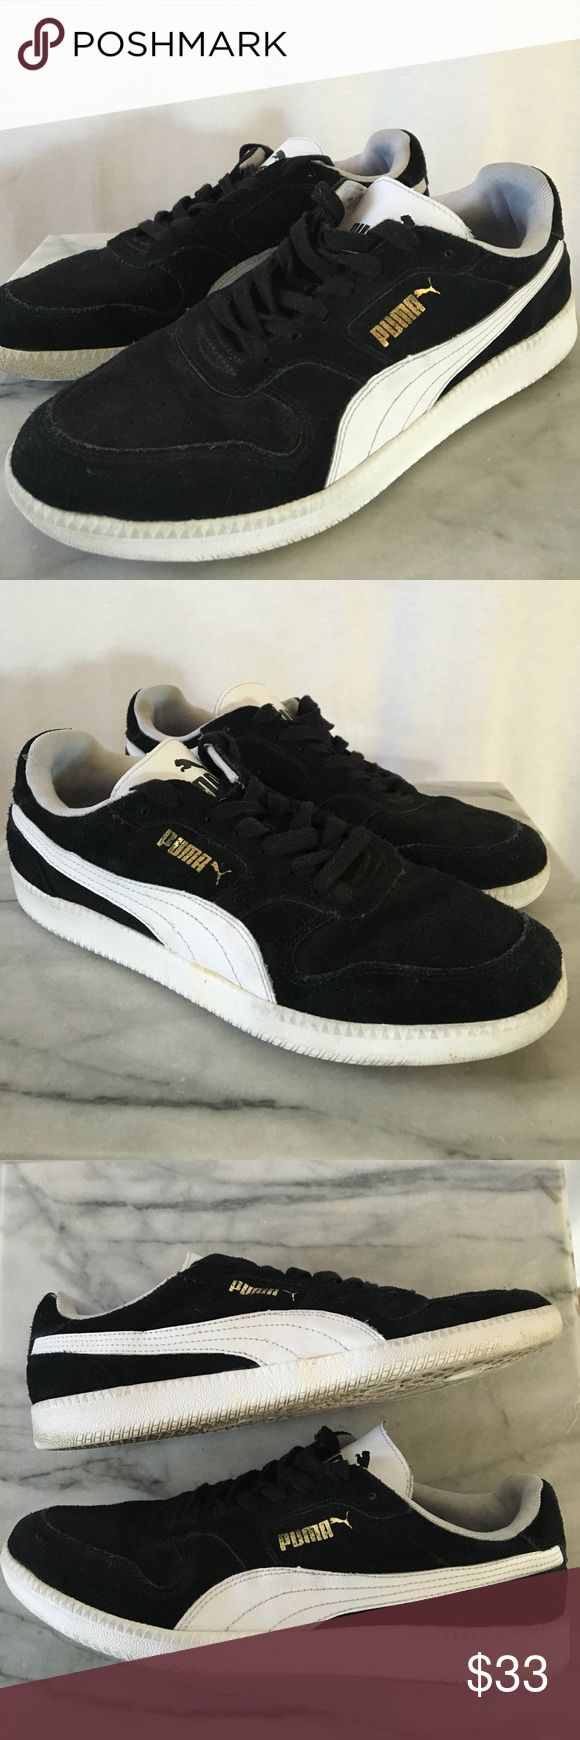 Puma Icra Trainer This is the Puma Icra trainer. Black suede upper with a white logo/tongue and gold Puma emblem. Sz 9. Thanks! ‼️ Puma Shoes Athletic Shoes